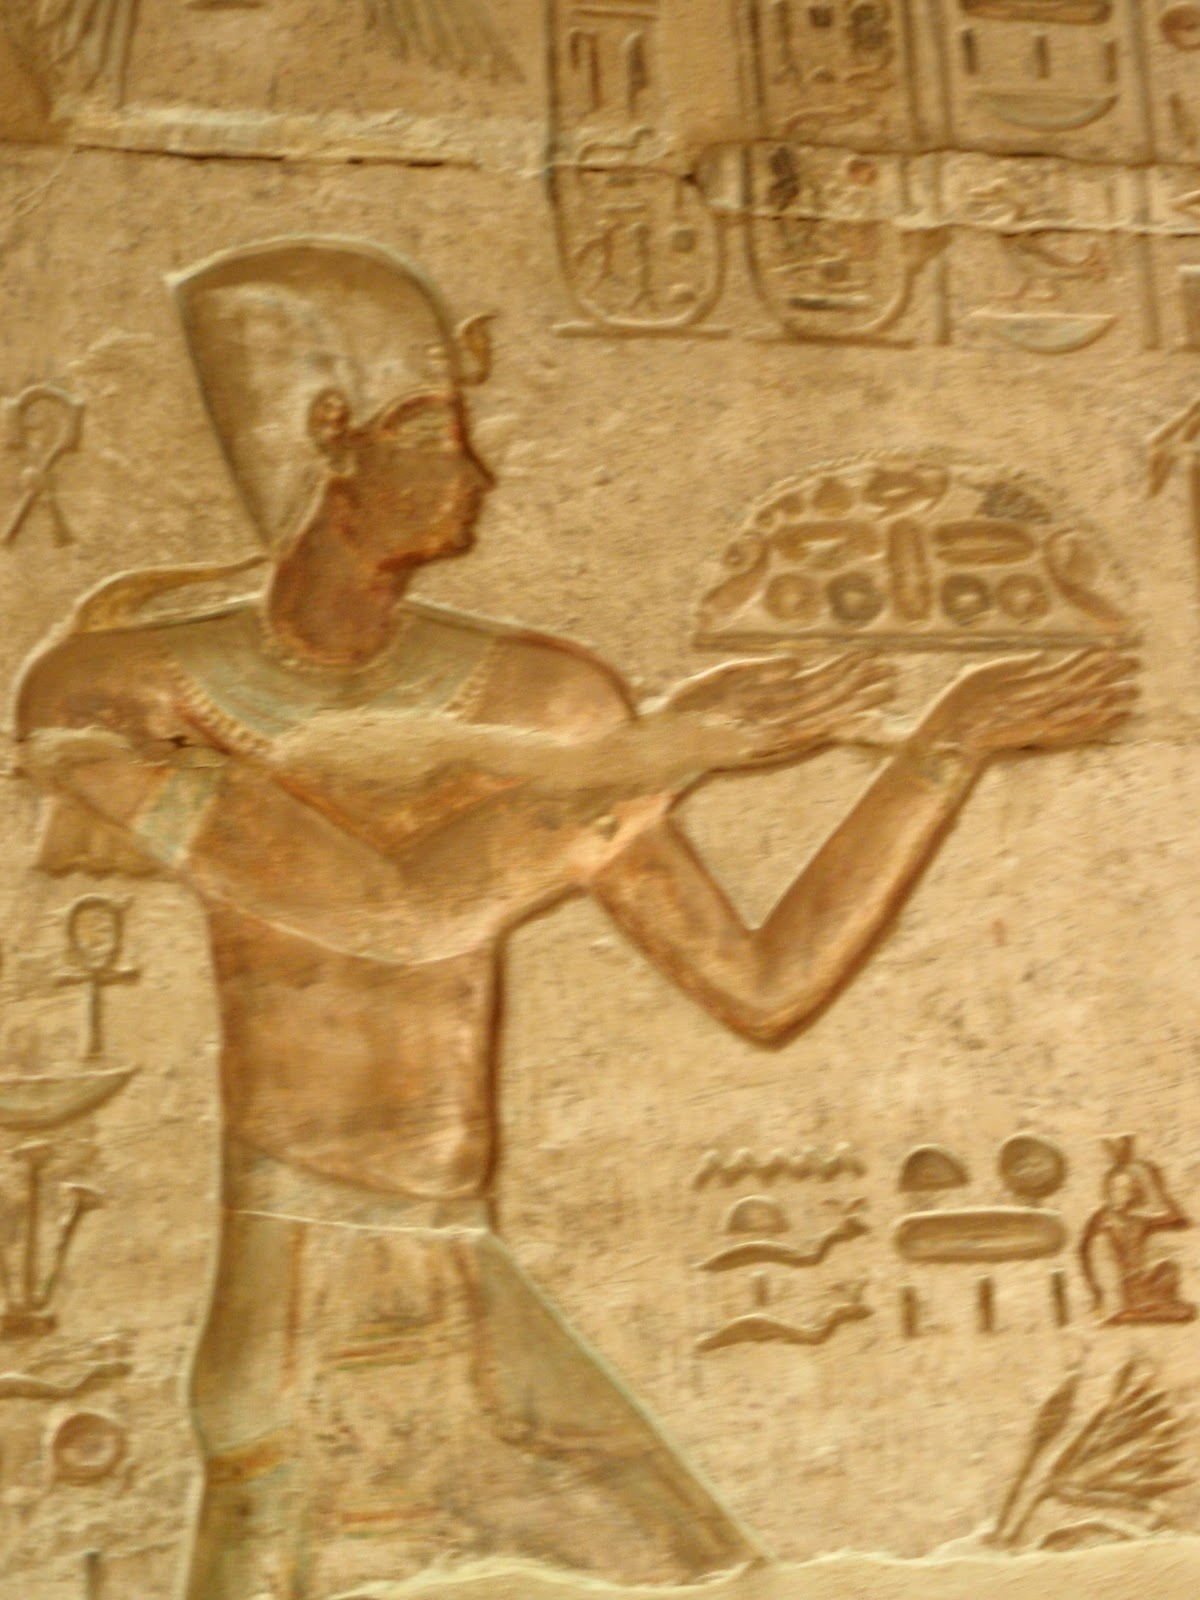 Food writes for Ancient egyptian cuisine